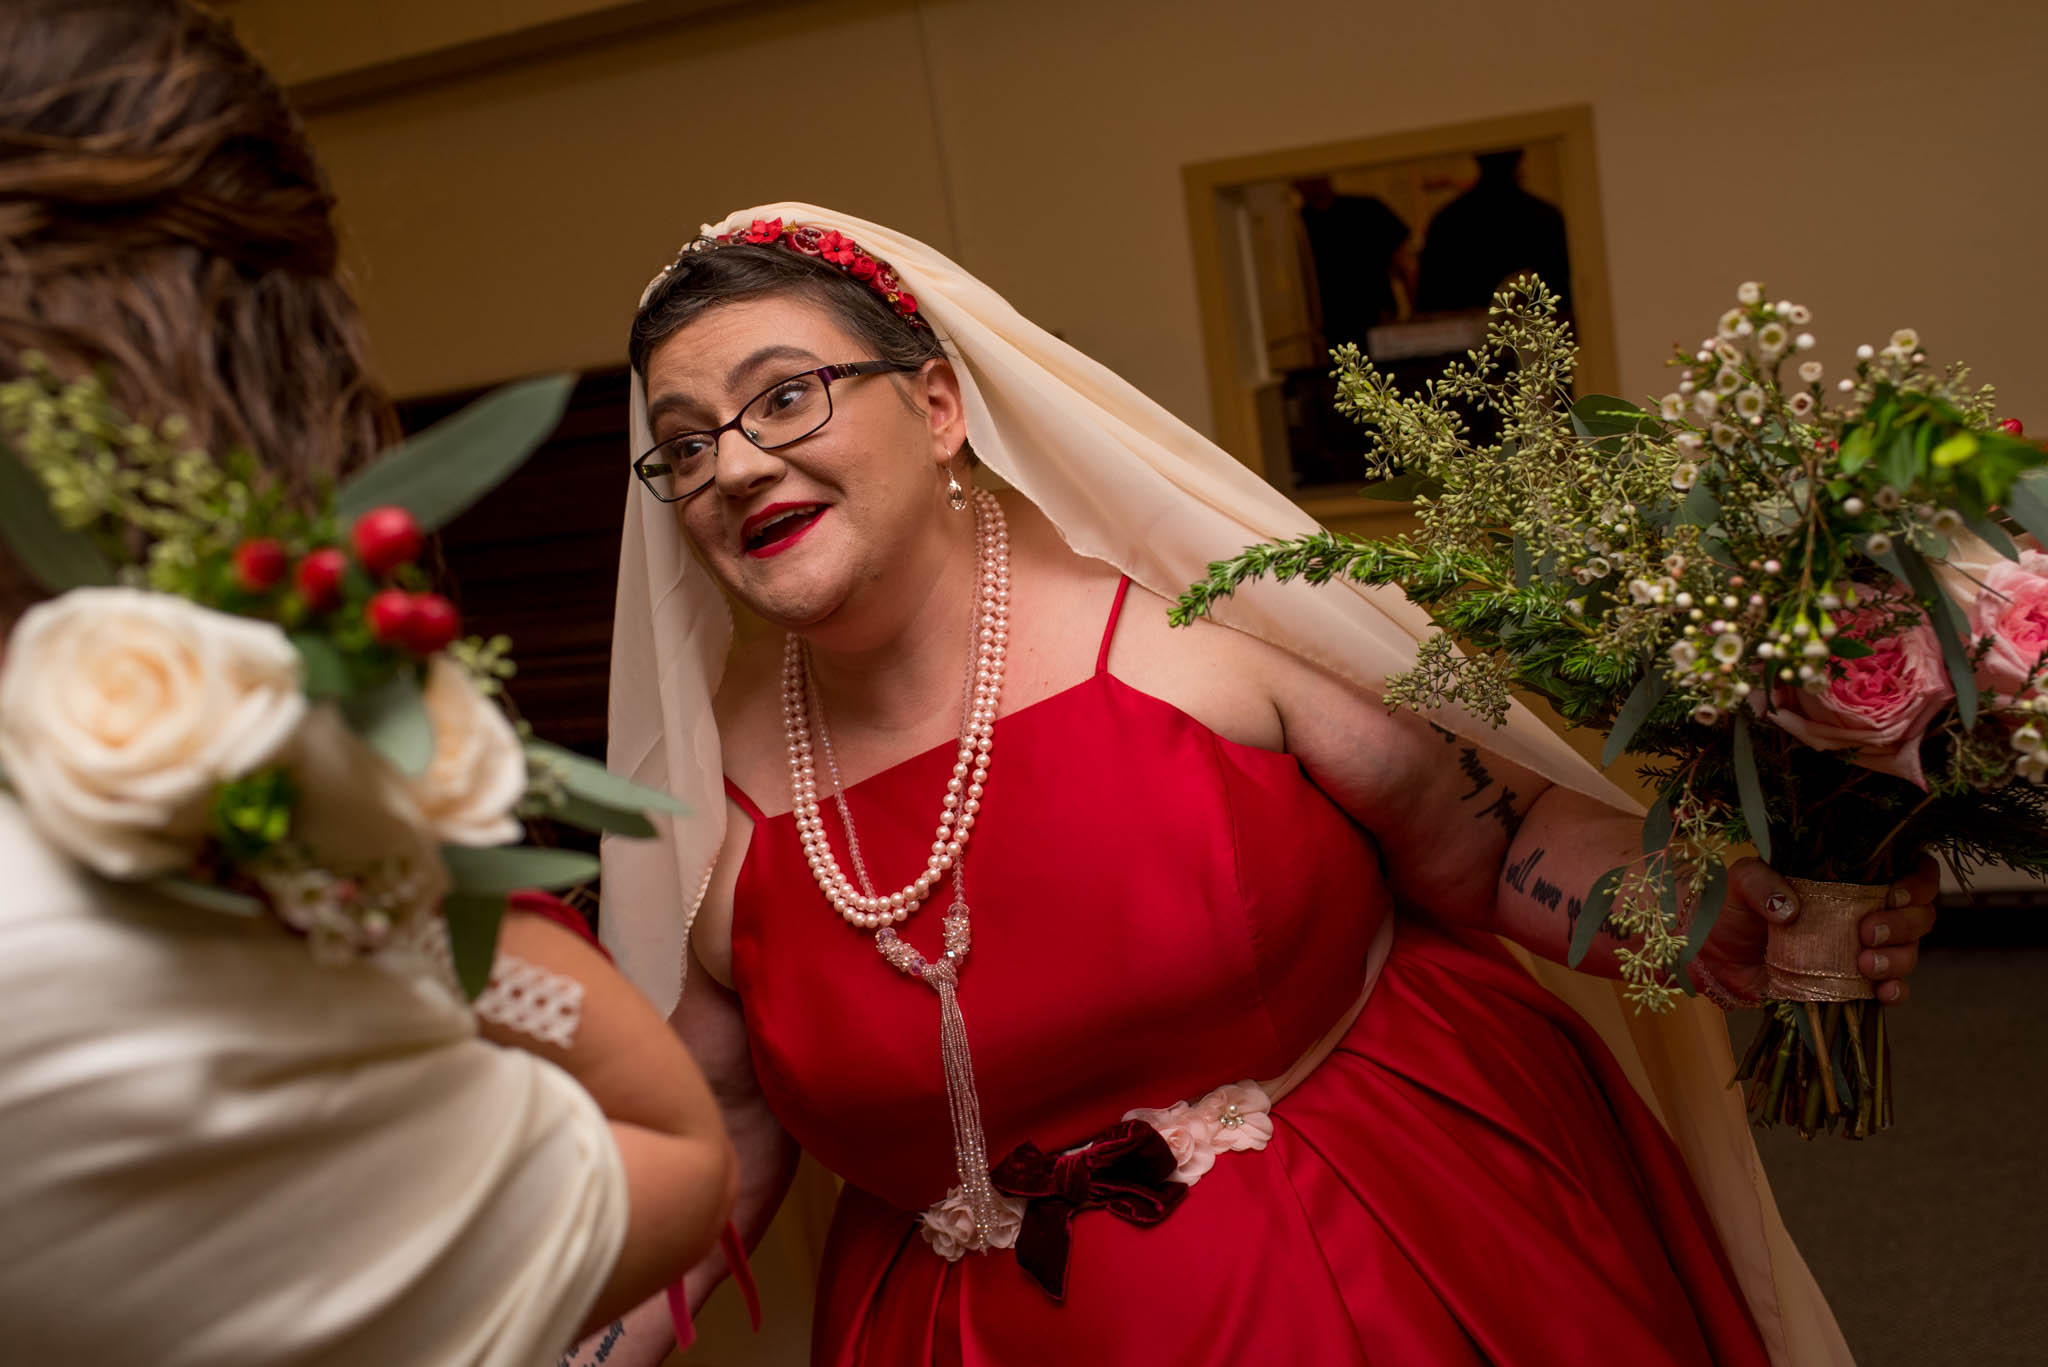 Bride wearing red dress holding bouquet